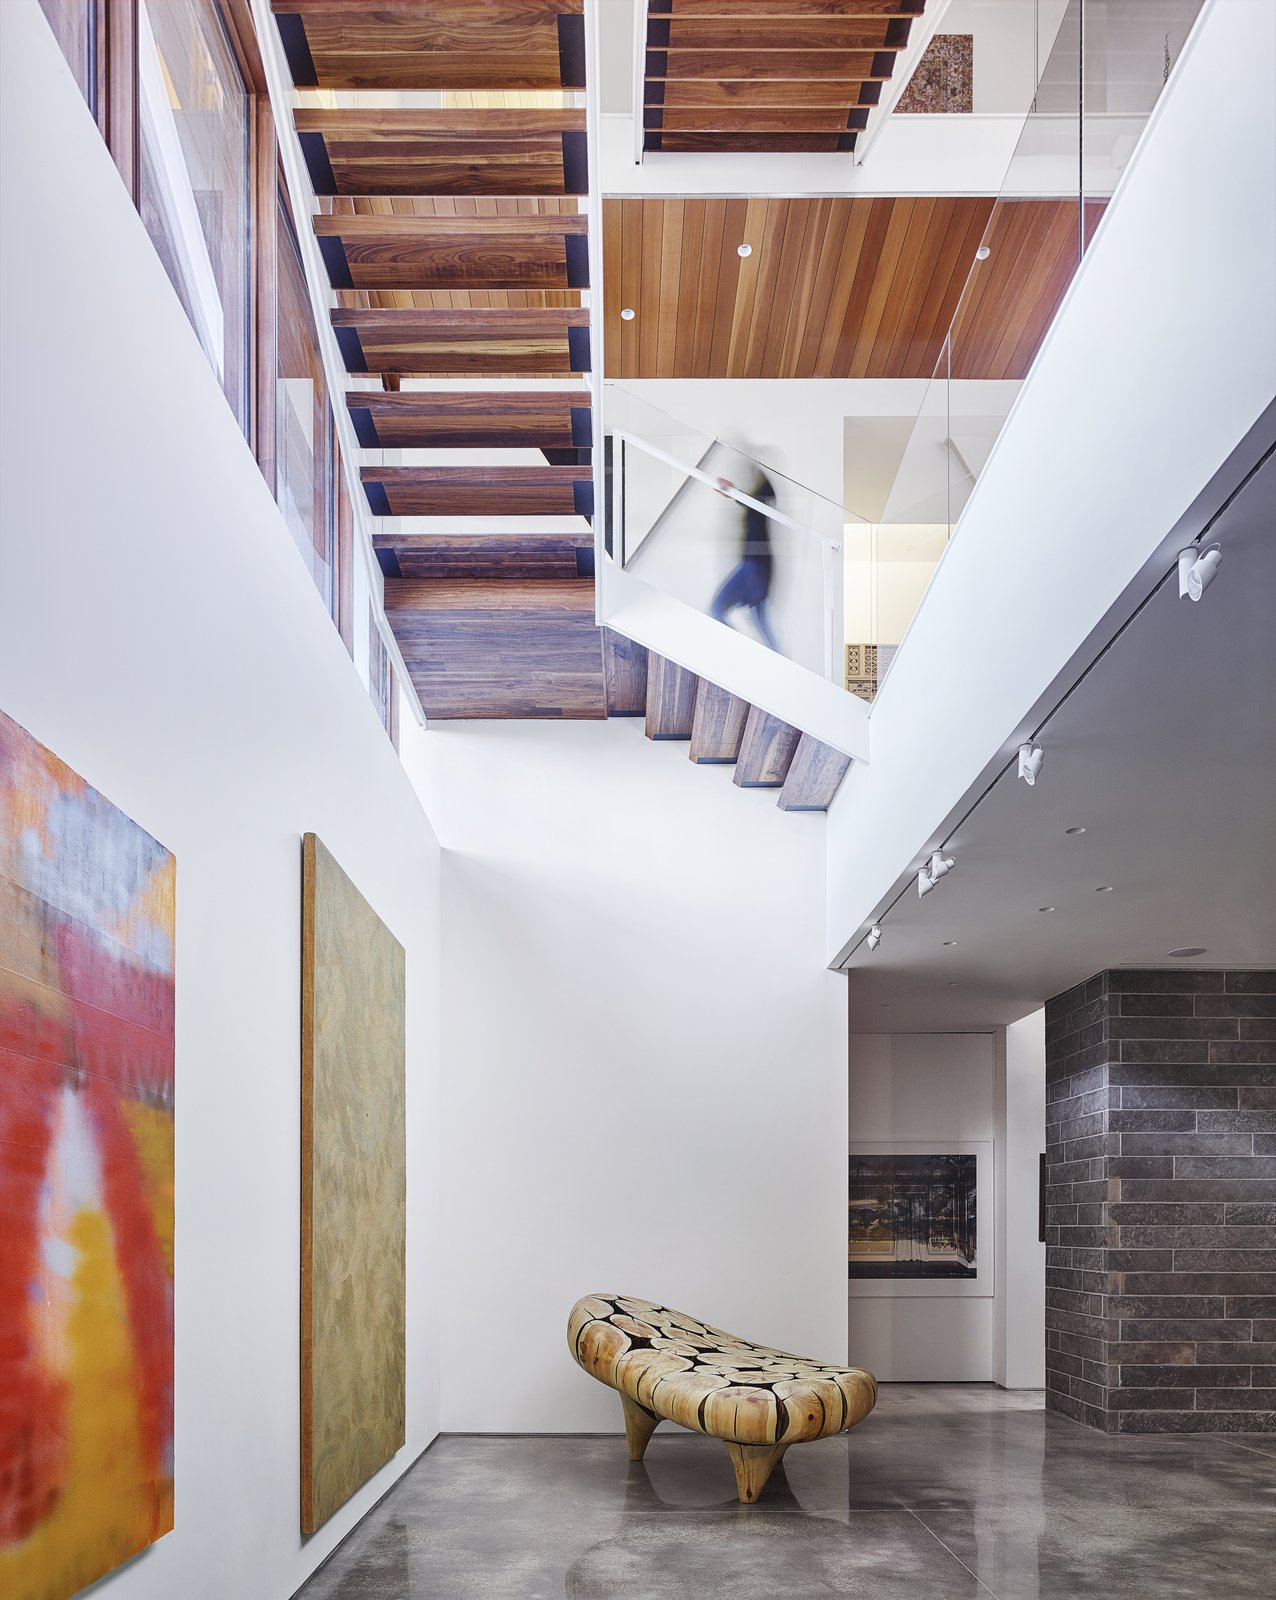 Hallway and Concrete Floor A open-tread staircase connects the below-grade gallery space to the living spaces above. Glass guardrails and the open treads allow for visual continuity and passage of light.    Artery House